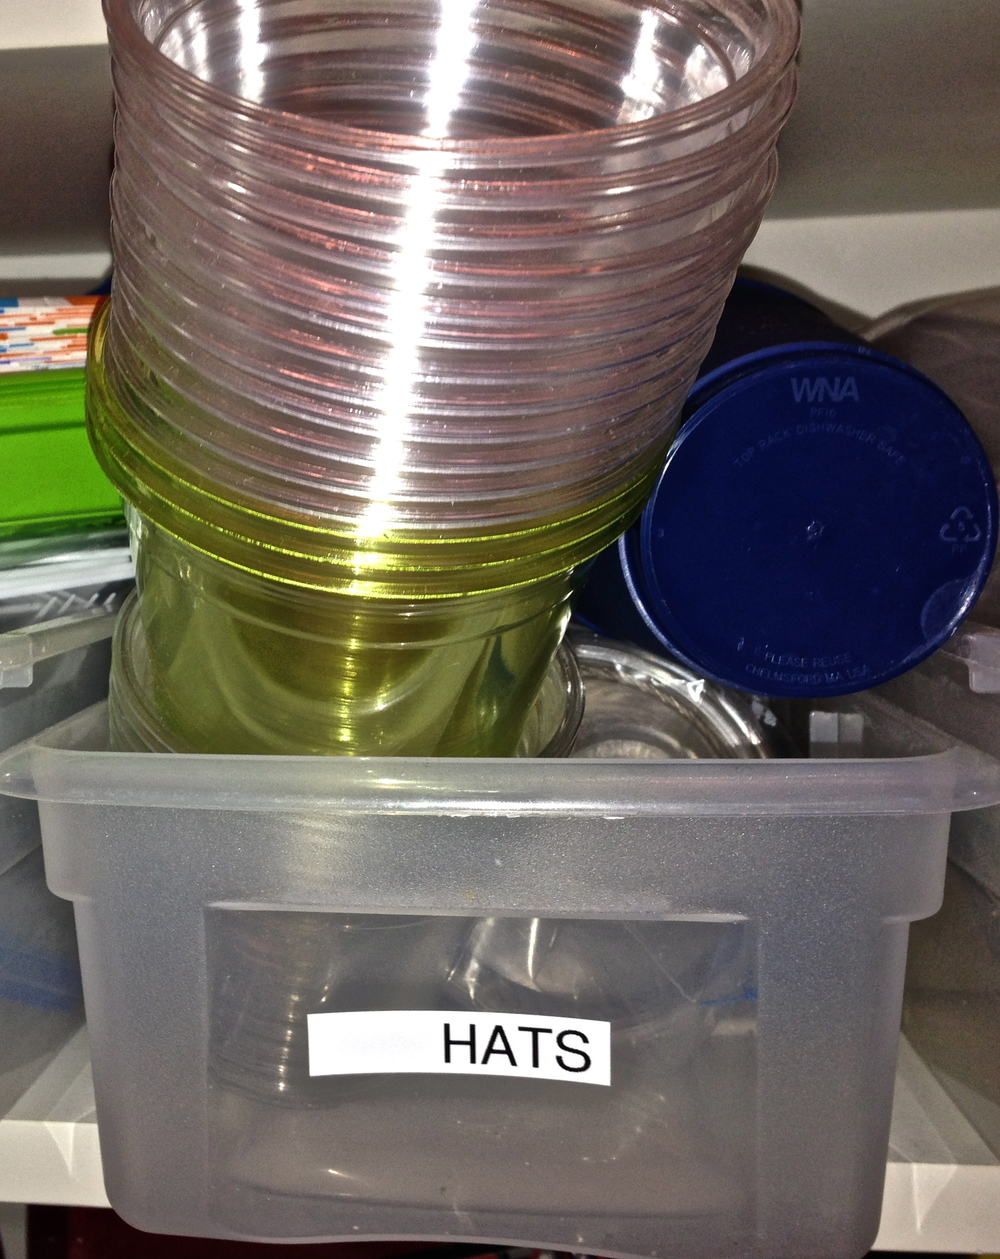 This box, clearly labeled HATS contains exactly no hats.